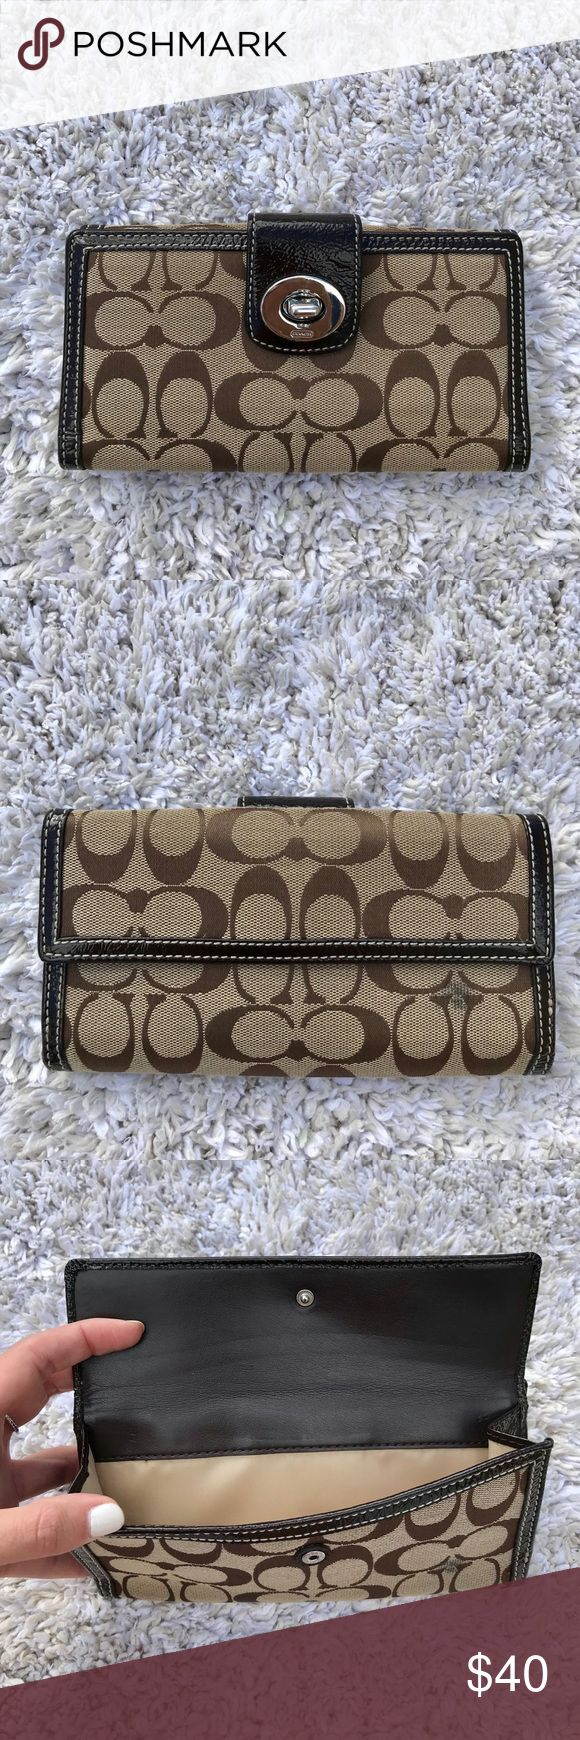 Coach long wallet Used wallet with lots of space. Has a stain on the back that will probably come off with soap/water or a mild cleaner. I have never tried. Price will reflect blemish! Otherwise a super great all around wallet! Coach Bags Wallets